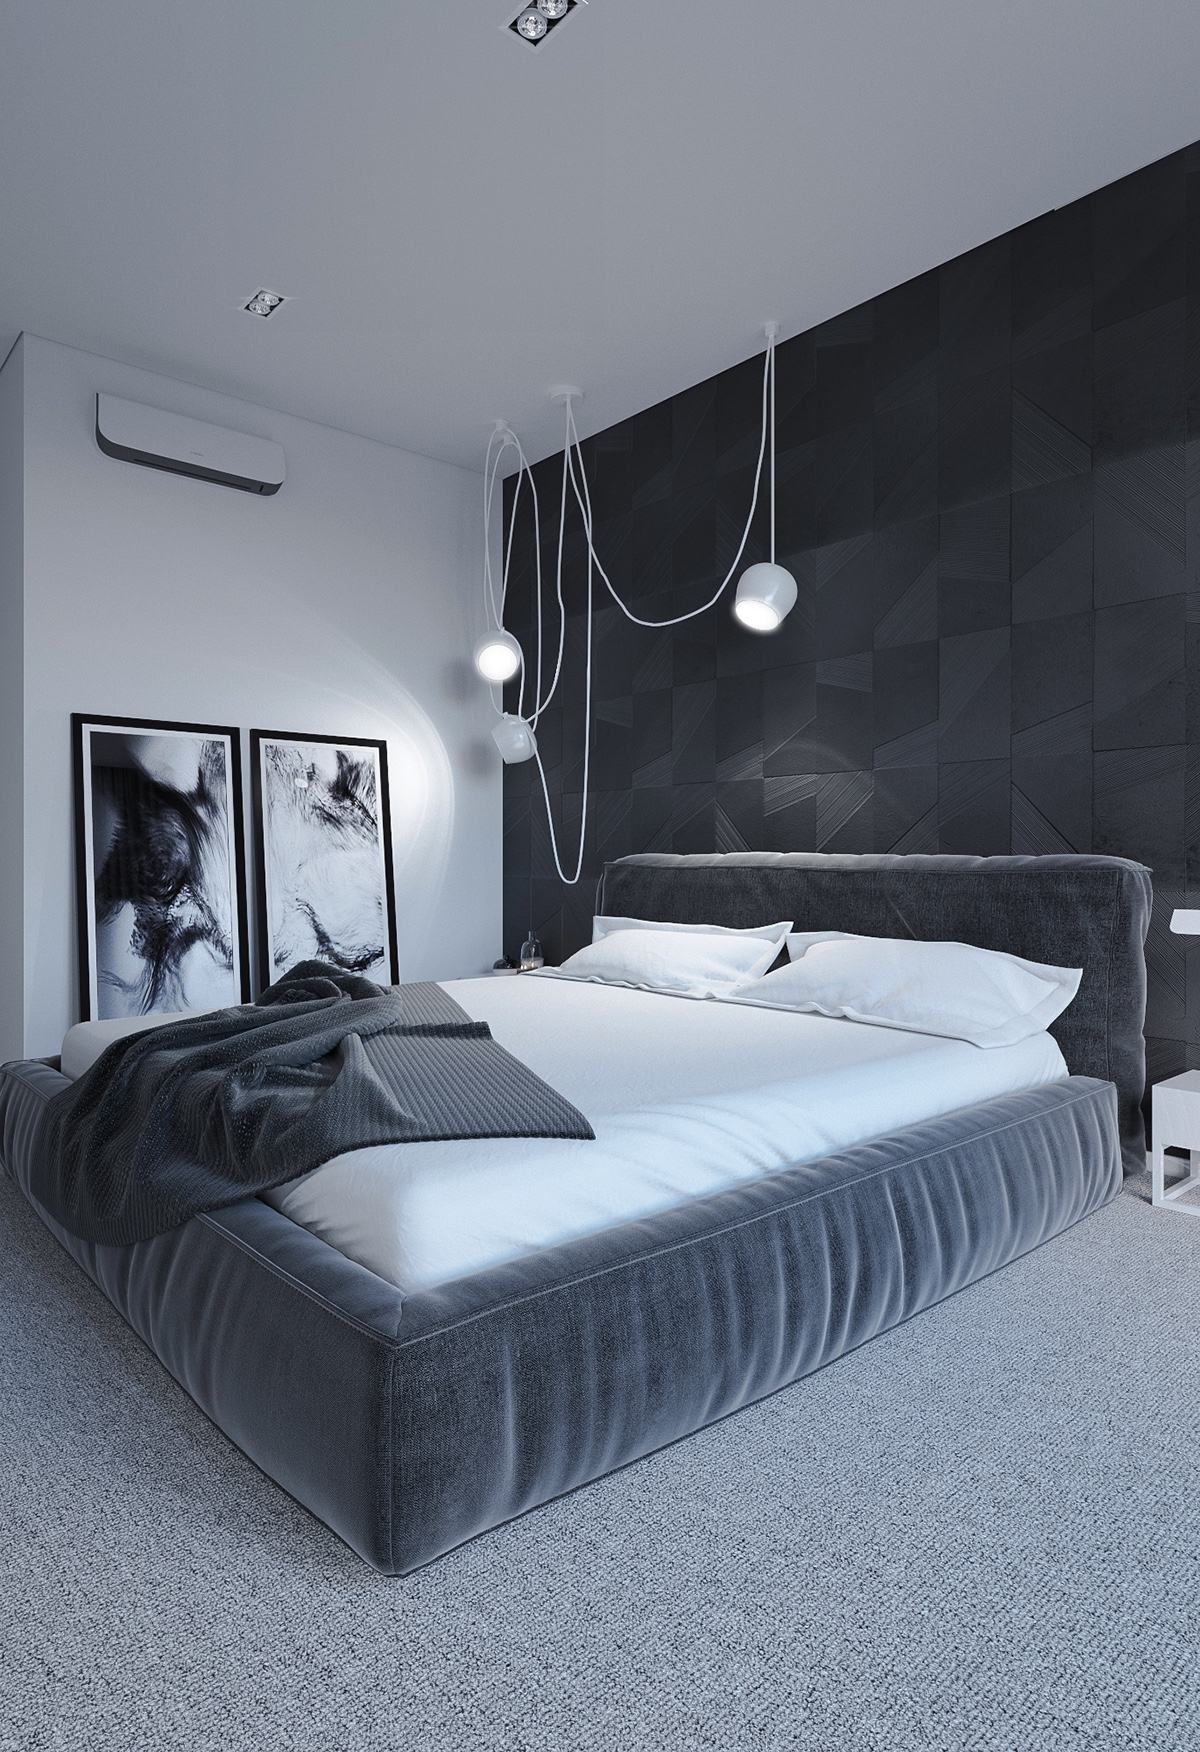 6 dark bedrooms designs to inspire sweet dreams for Sleeping room decoration